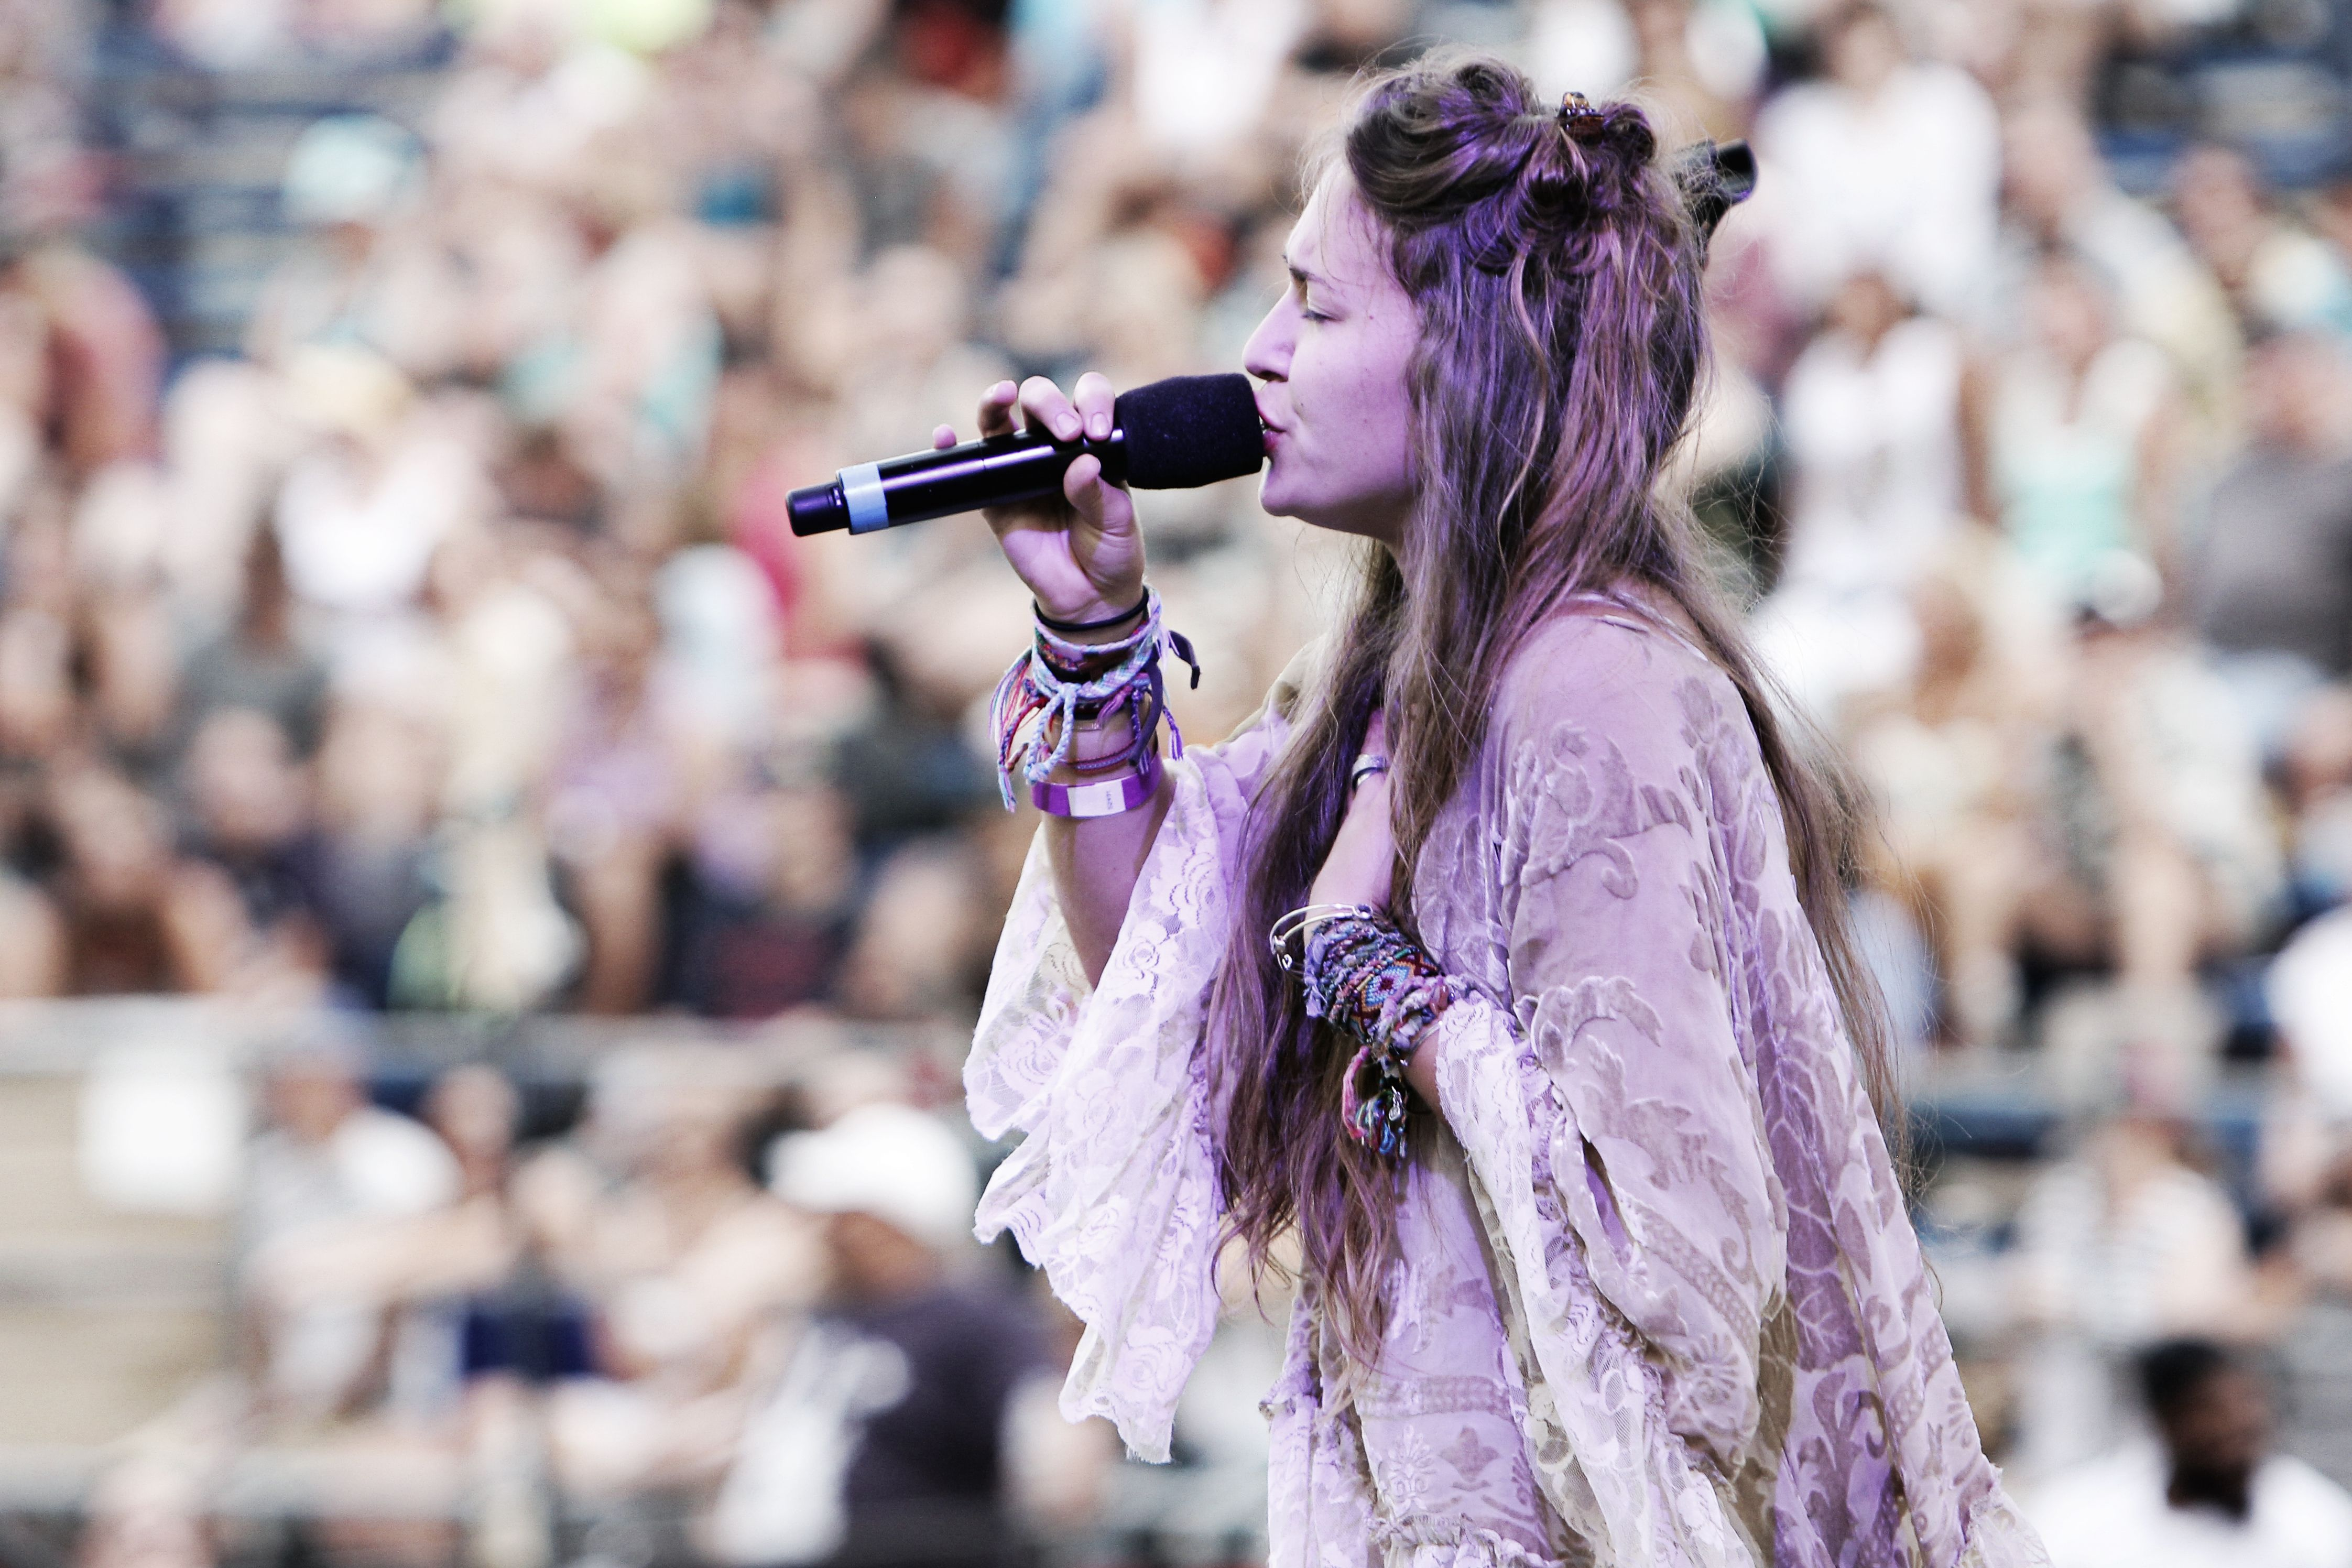 Lauren Daigle has got style! She's so indie I love her